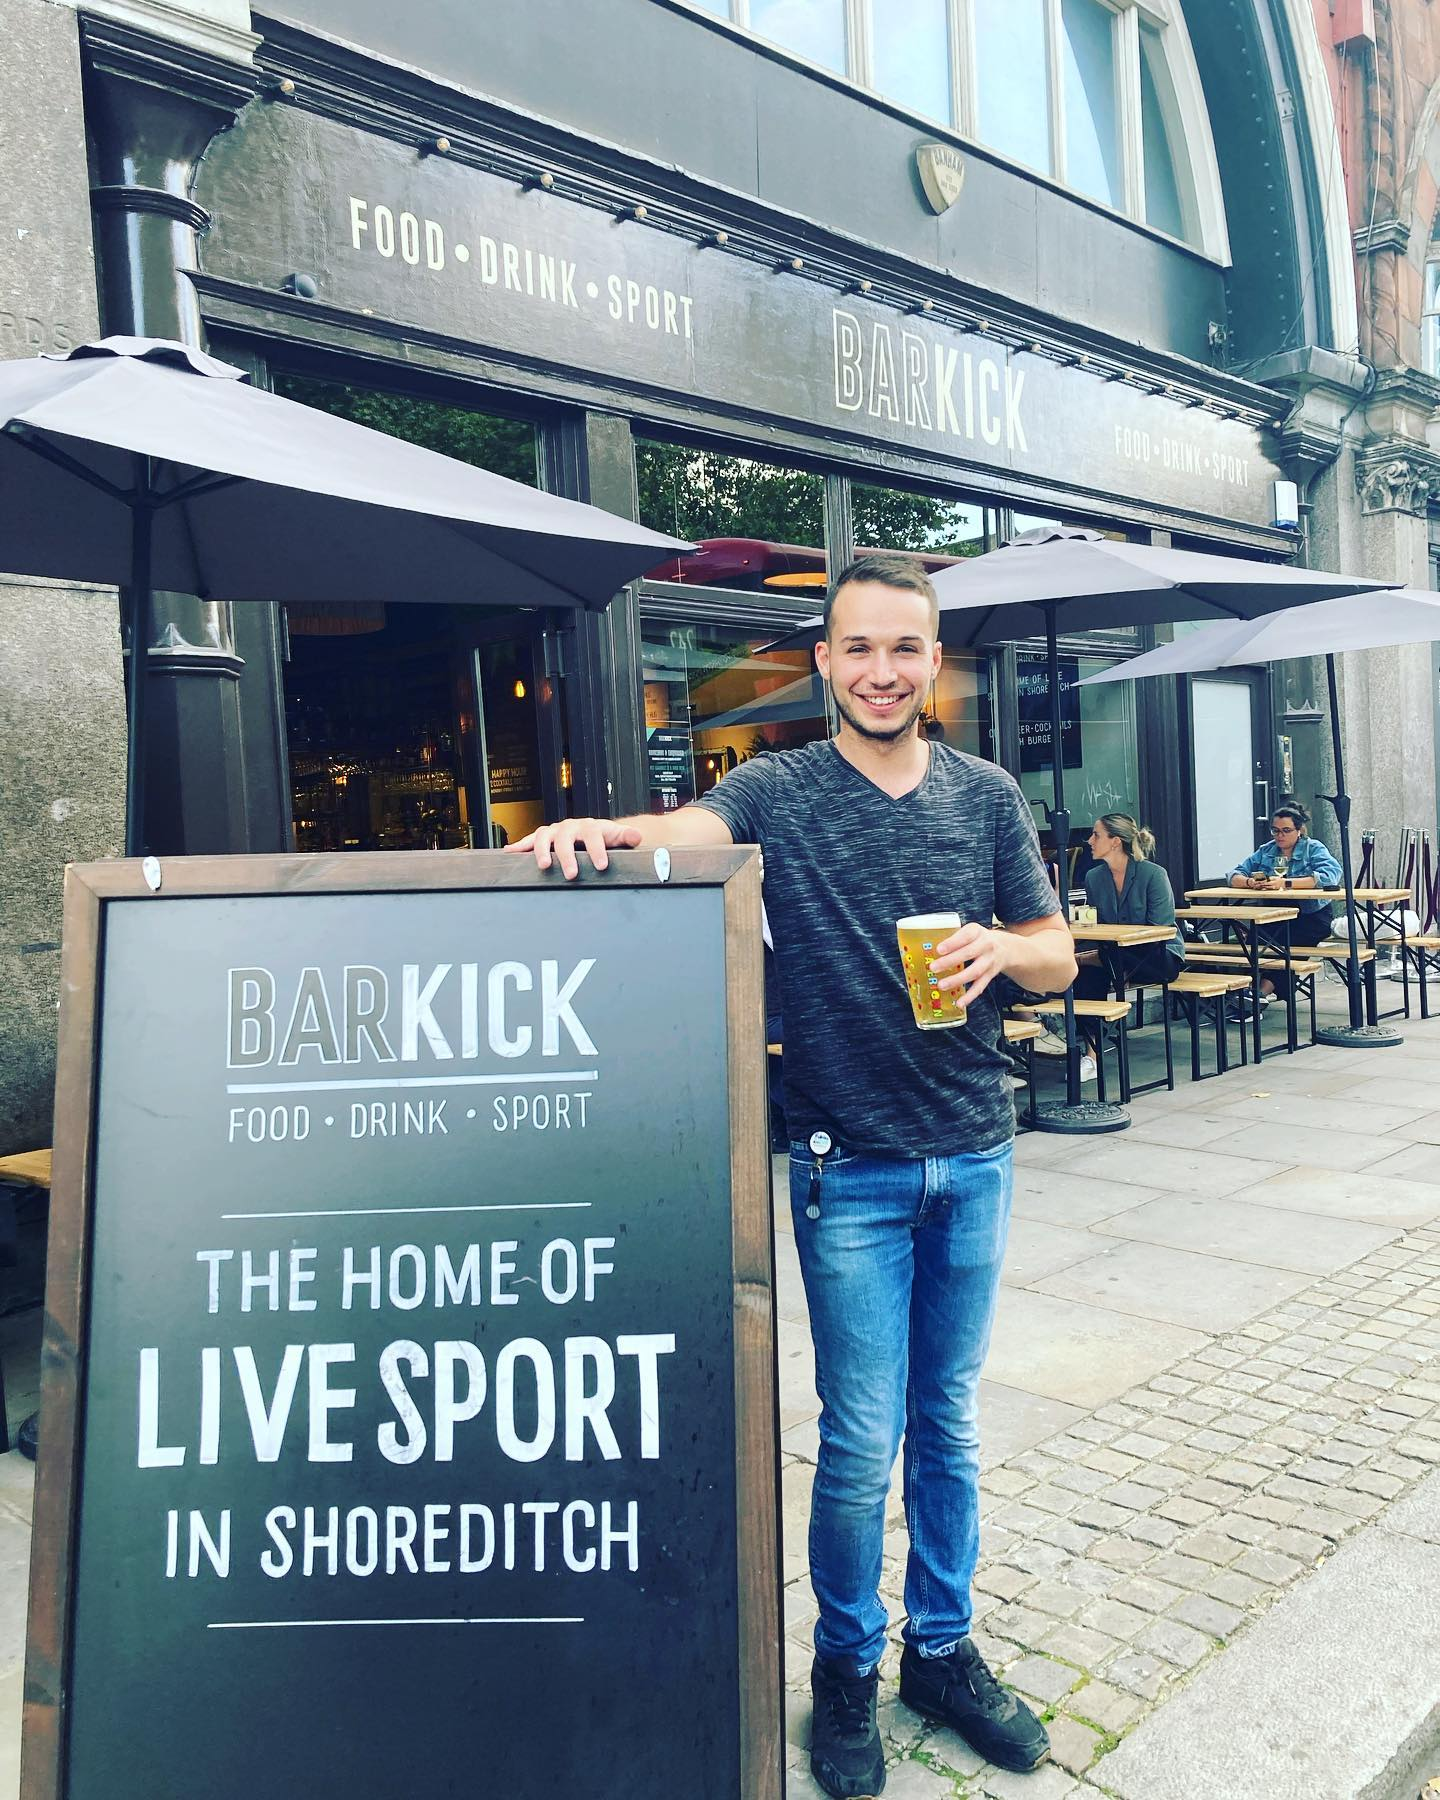 BEER FANS 🍻 Fabien here is off on his holidays this weekend so is going to miss the return of the Premier League ⚽️!! Be sure to pop down for a swift half from him before he jets off!! 🦵🦵 . . . . #shoreditch #craftbeer #eastlondon #e1 #london #cocktails #bar #foodie #burgers #sport #premierleague #football #sports #bigscreen